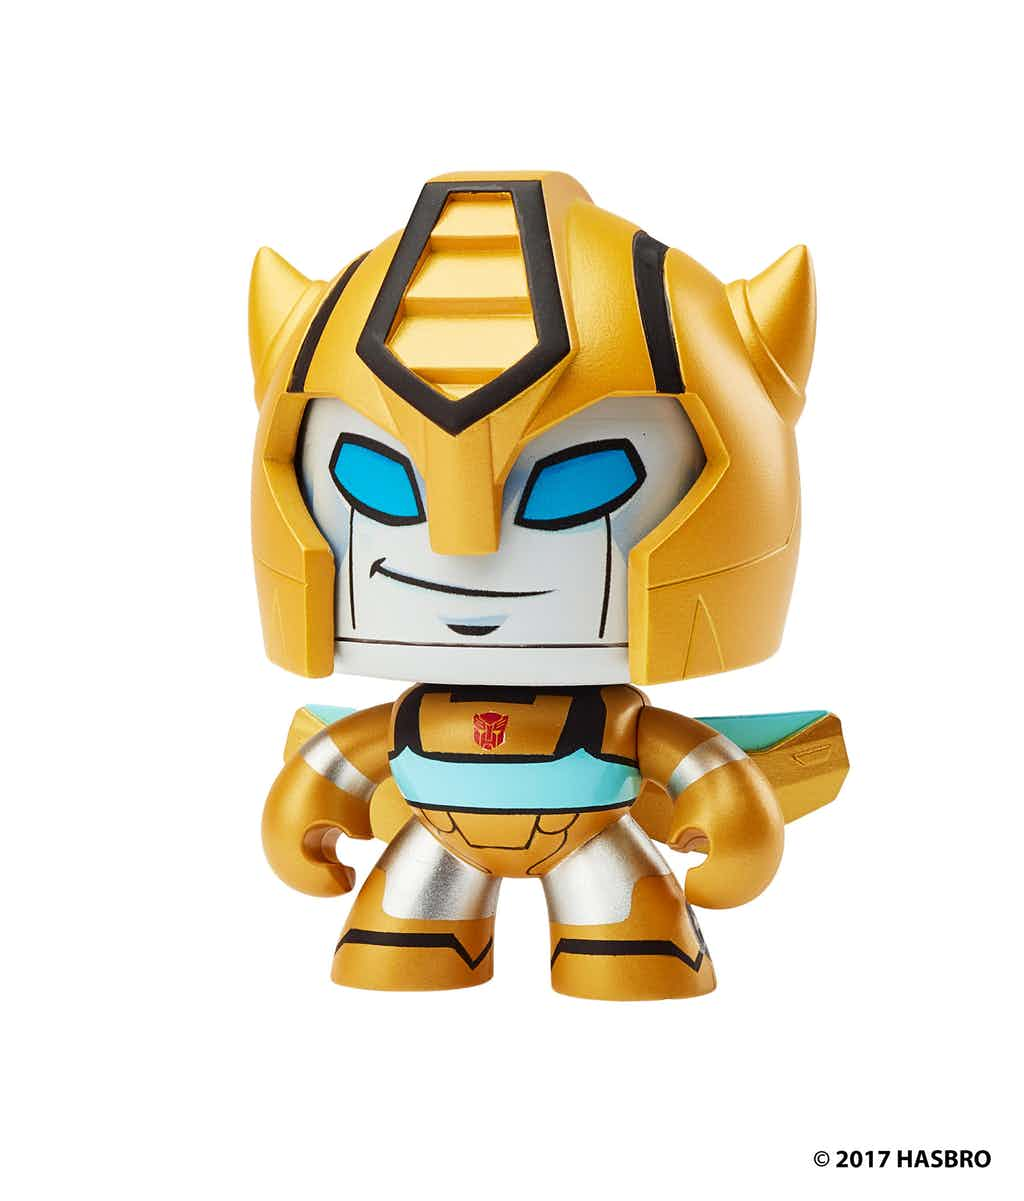 New transformers mighty muggs images transformers news tfw2005.